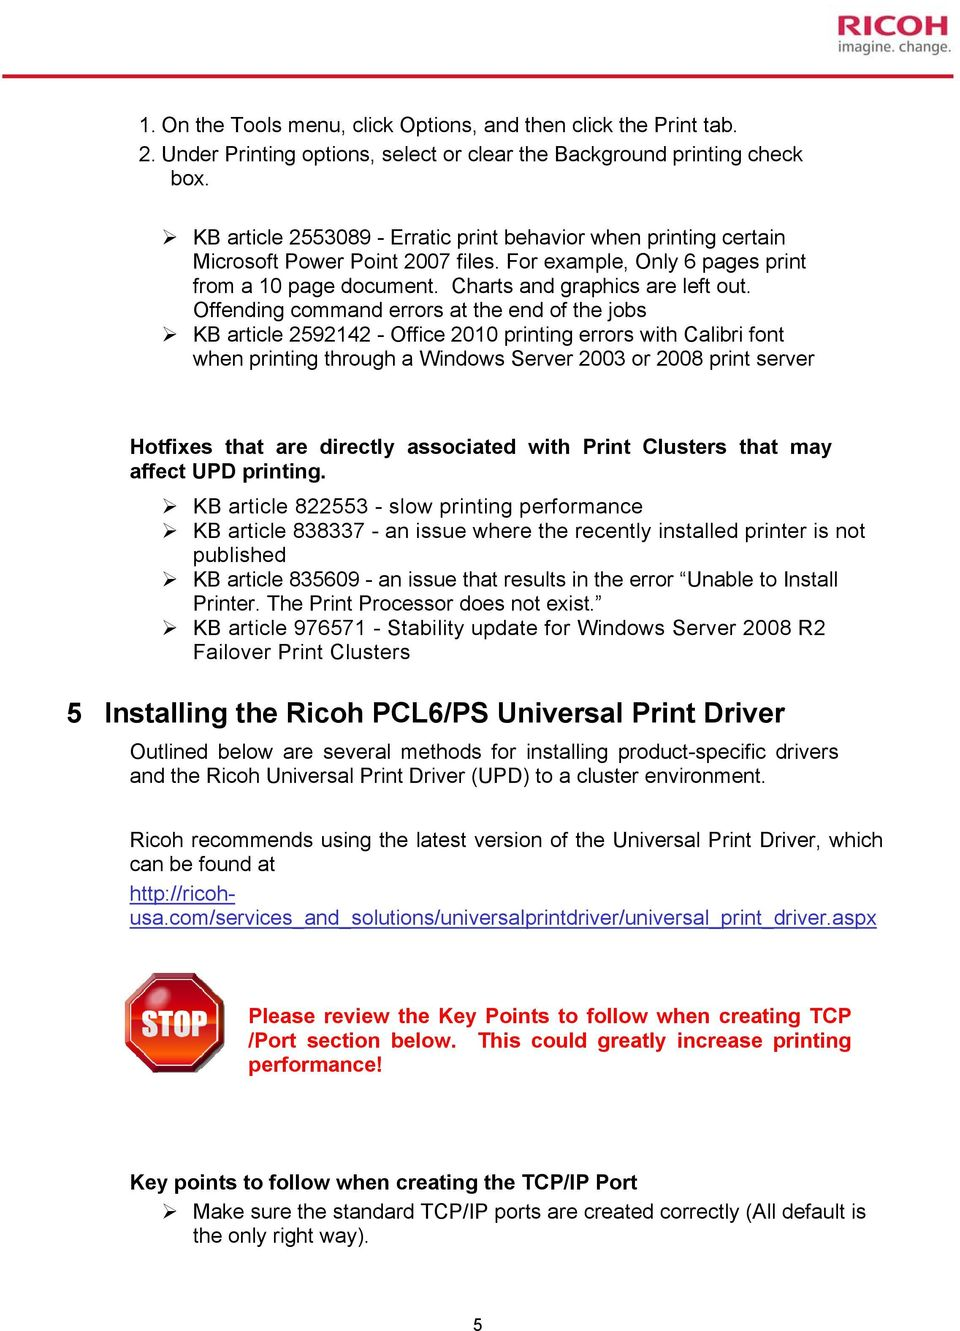 Best Practices Using Ricoh Universal Printer Drivers (UPD) In